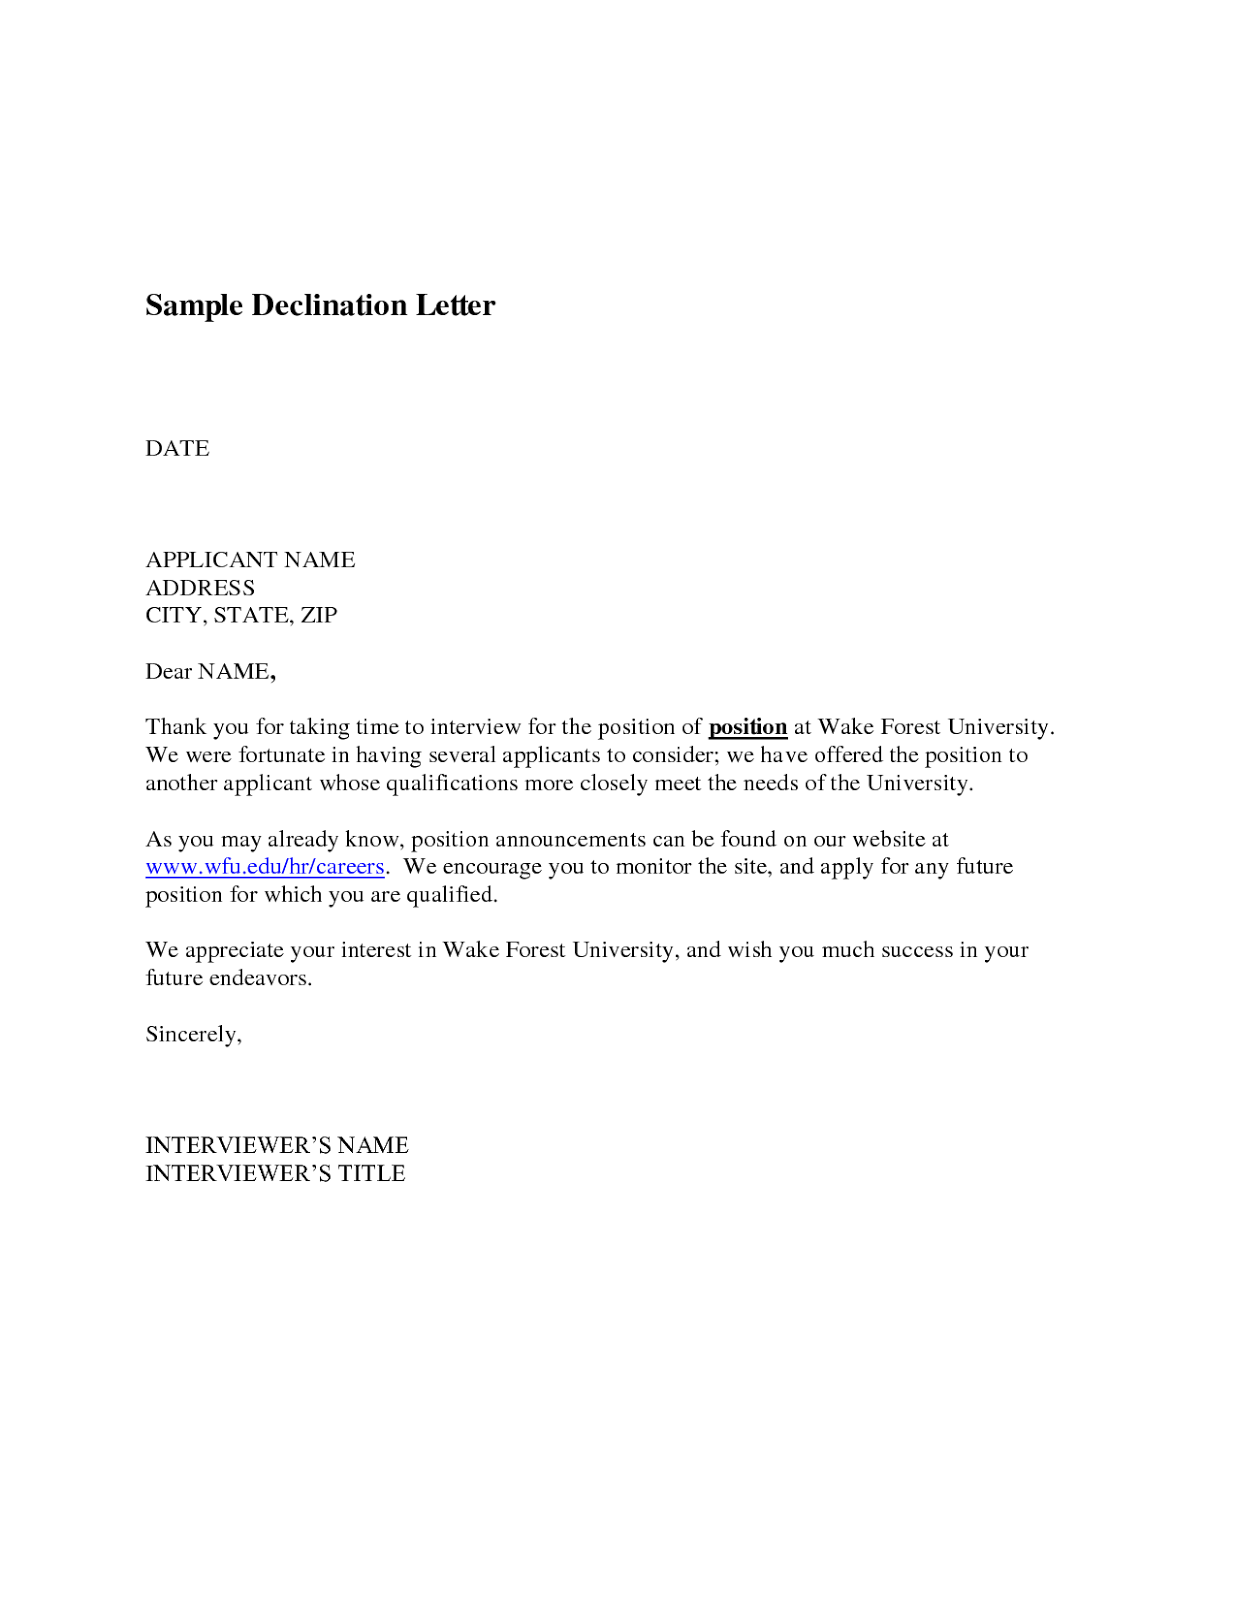 job posting cover letter samples for sample letters - Covering Letter For Jobs